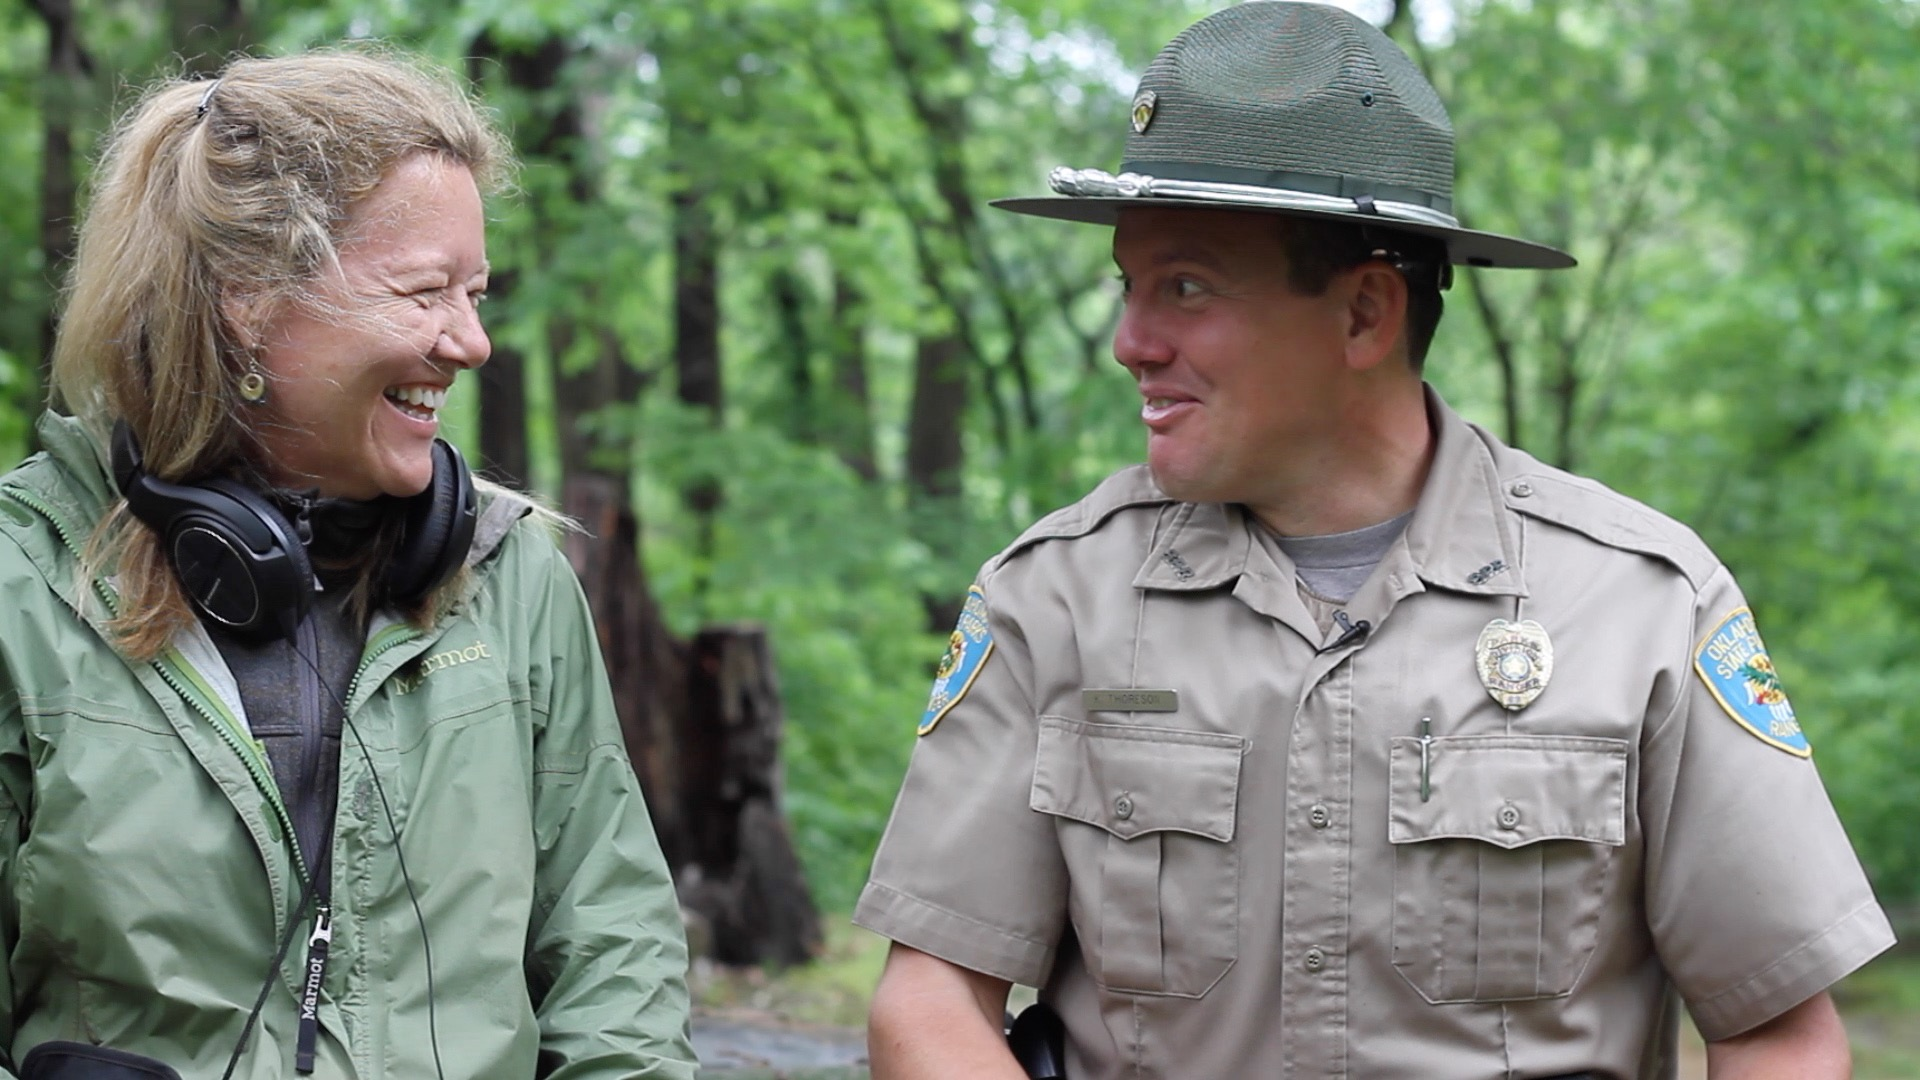 One of my favorite interview experiences - I met Ranger Kyle Thoreson outside Bartlesville Oklahoma at Osage State Park, where Henry and I were camping. He found us during his evening check on a rainy night, sleeping in the back of our Jeep because I had left our tent poles in a field back in Missouri. Not only did he agree to an interview the next morning on his day off, but he located some tent poles in the park's lost and found and cut them to fit our little tent, which we slept in for the next many months, always remembering Kyle's kindness.